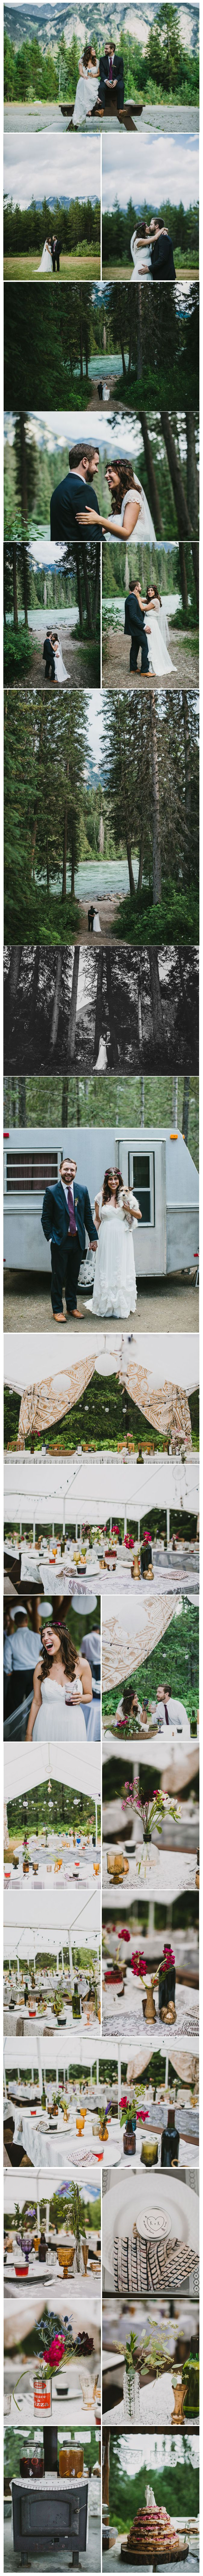 Intimate Mountain Campground Wedding: Kevin + Kathy – Part 2